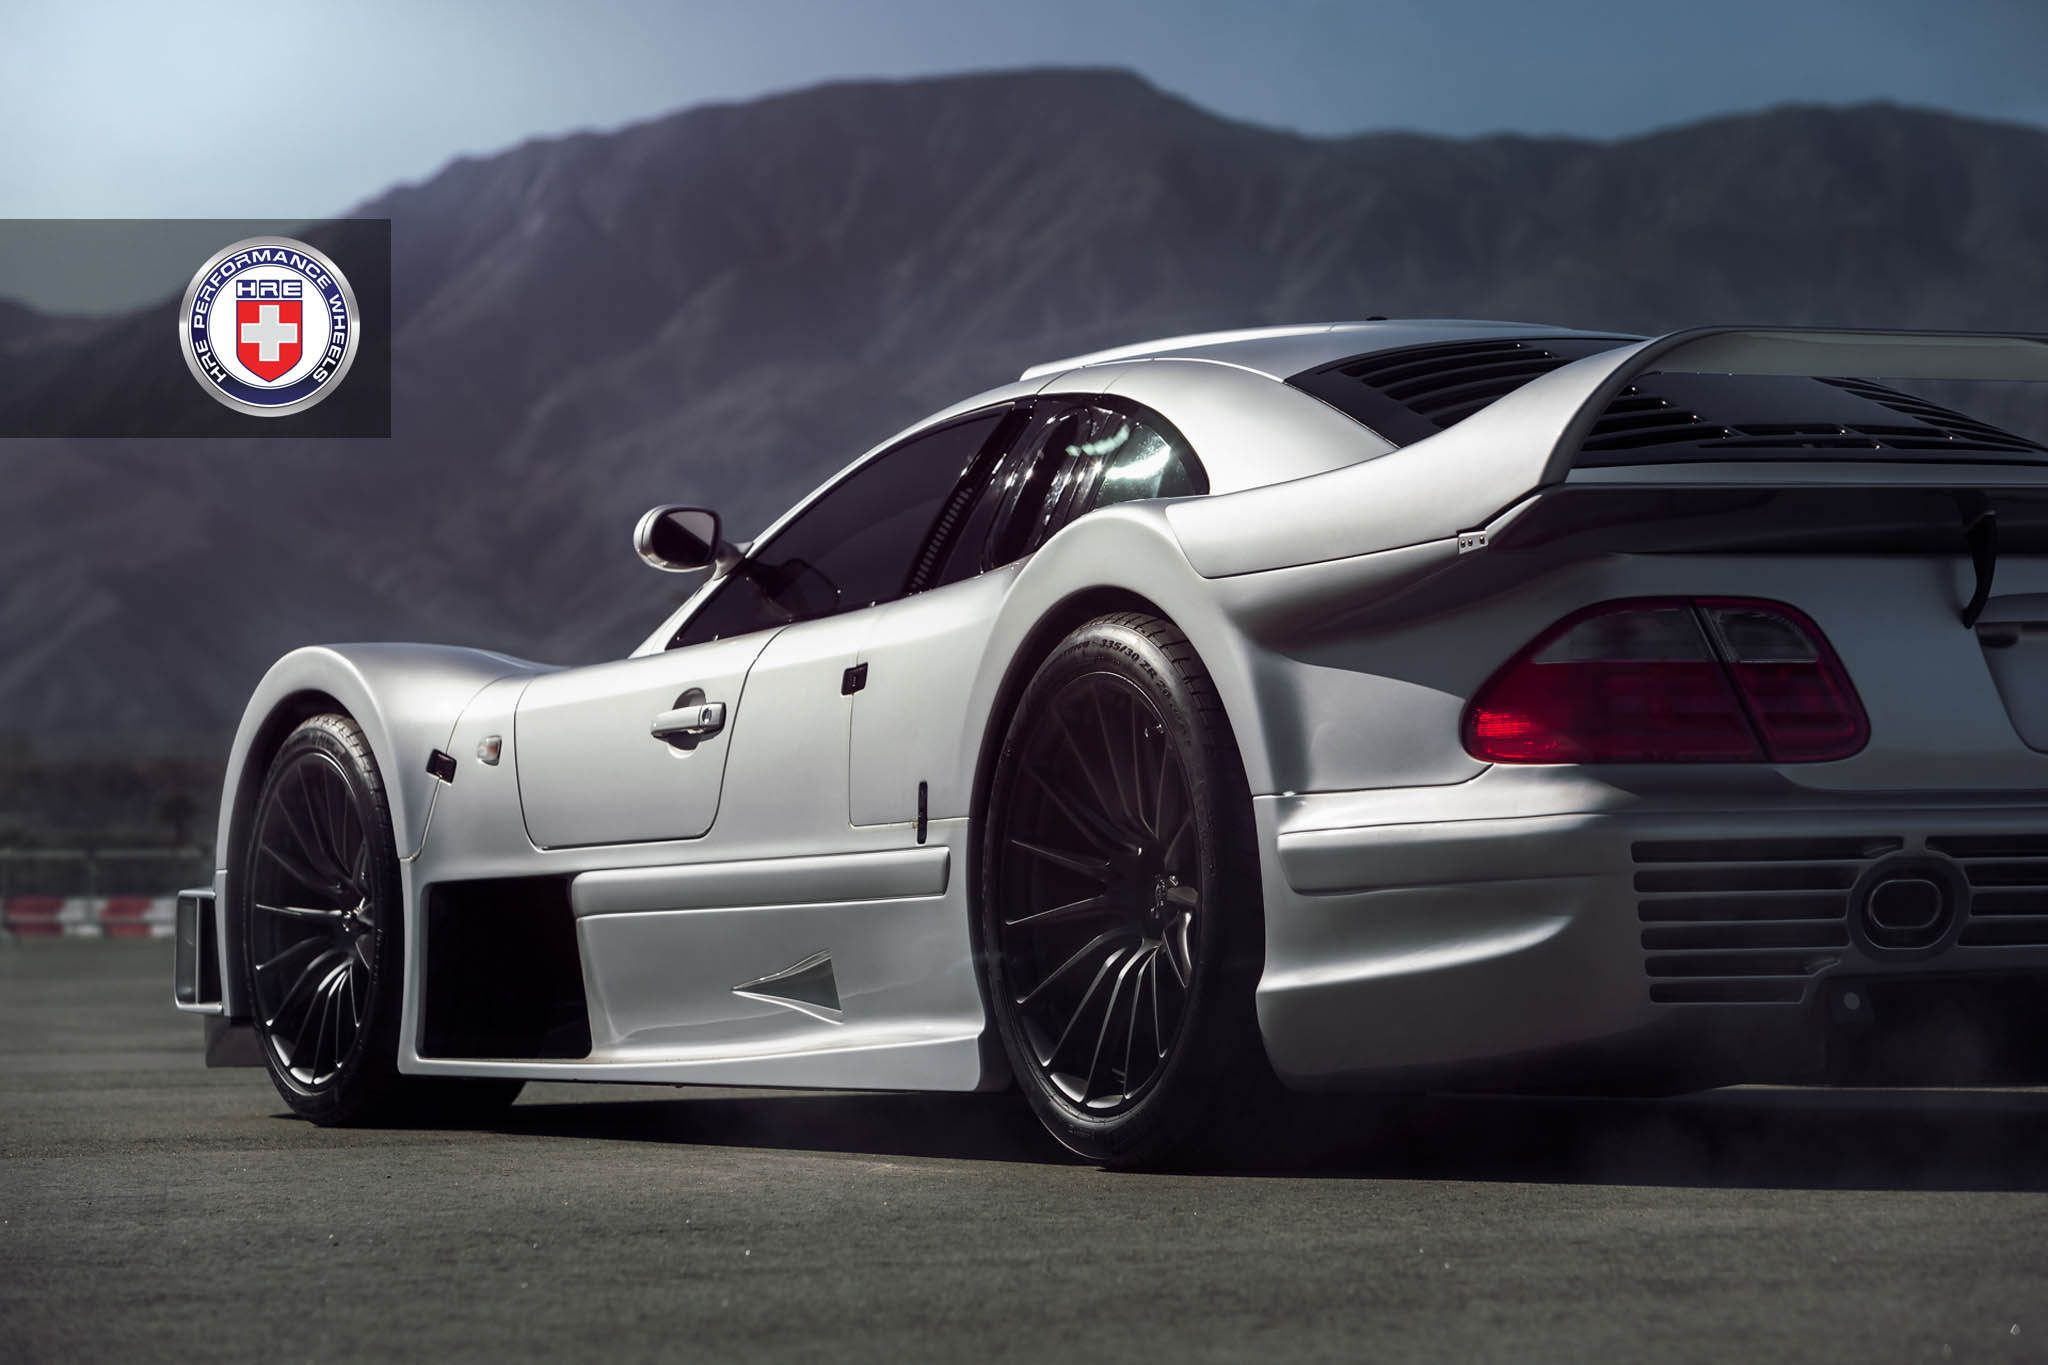 Mercedes-Benz-CLK-GTR-HRE-P103-Wheels-5.jpg (2048×1365)